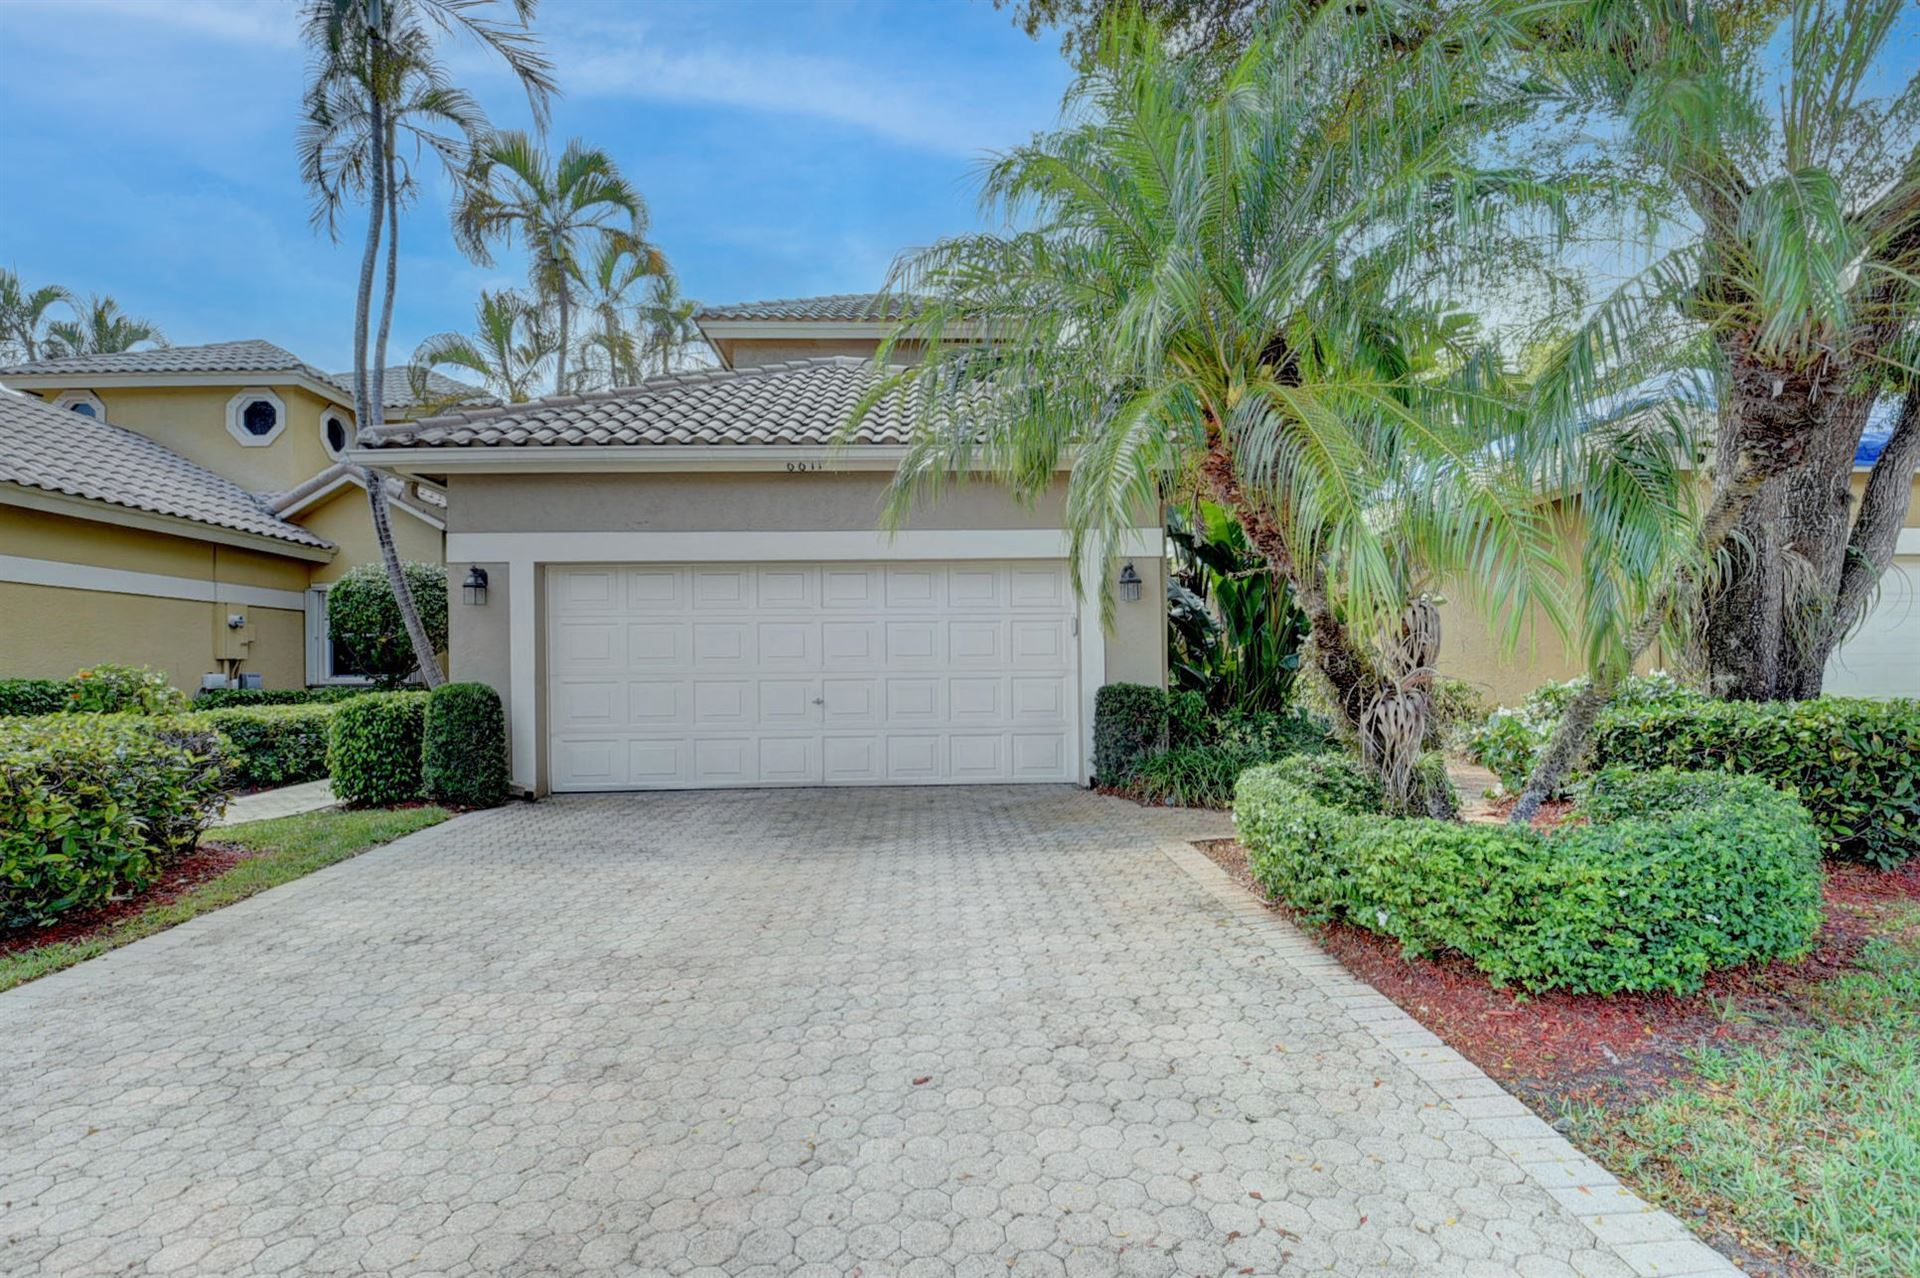 6671 NW 26th Way, Boca Raton, FL 33496 - #: RX-10708933